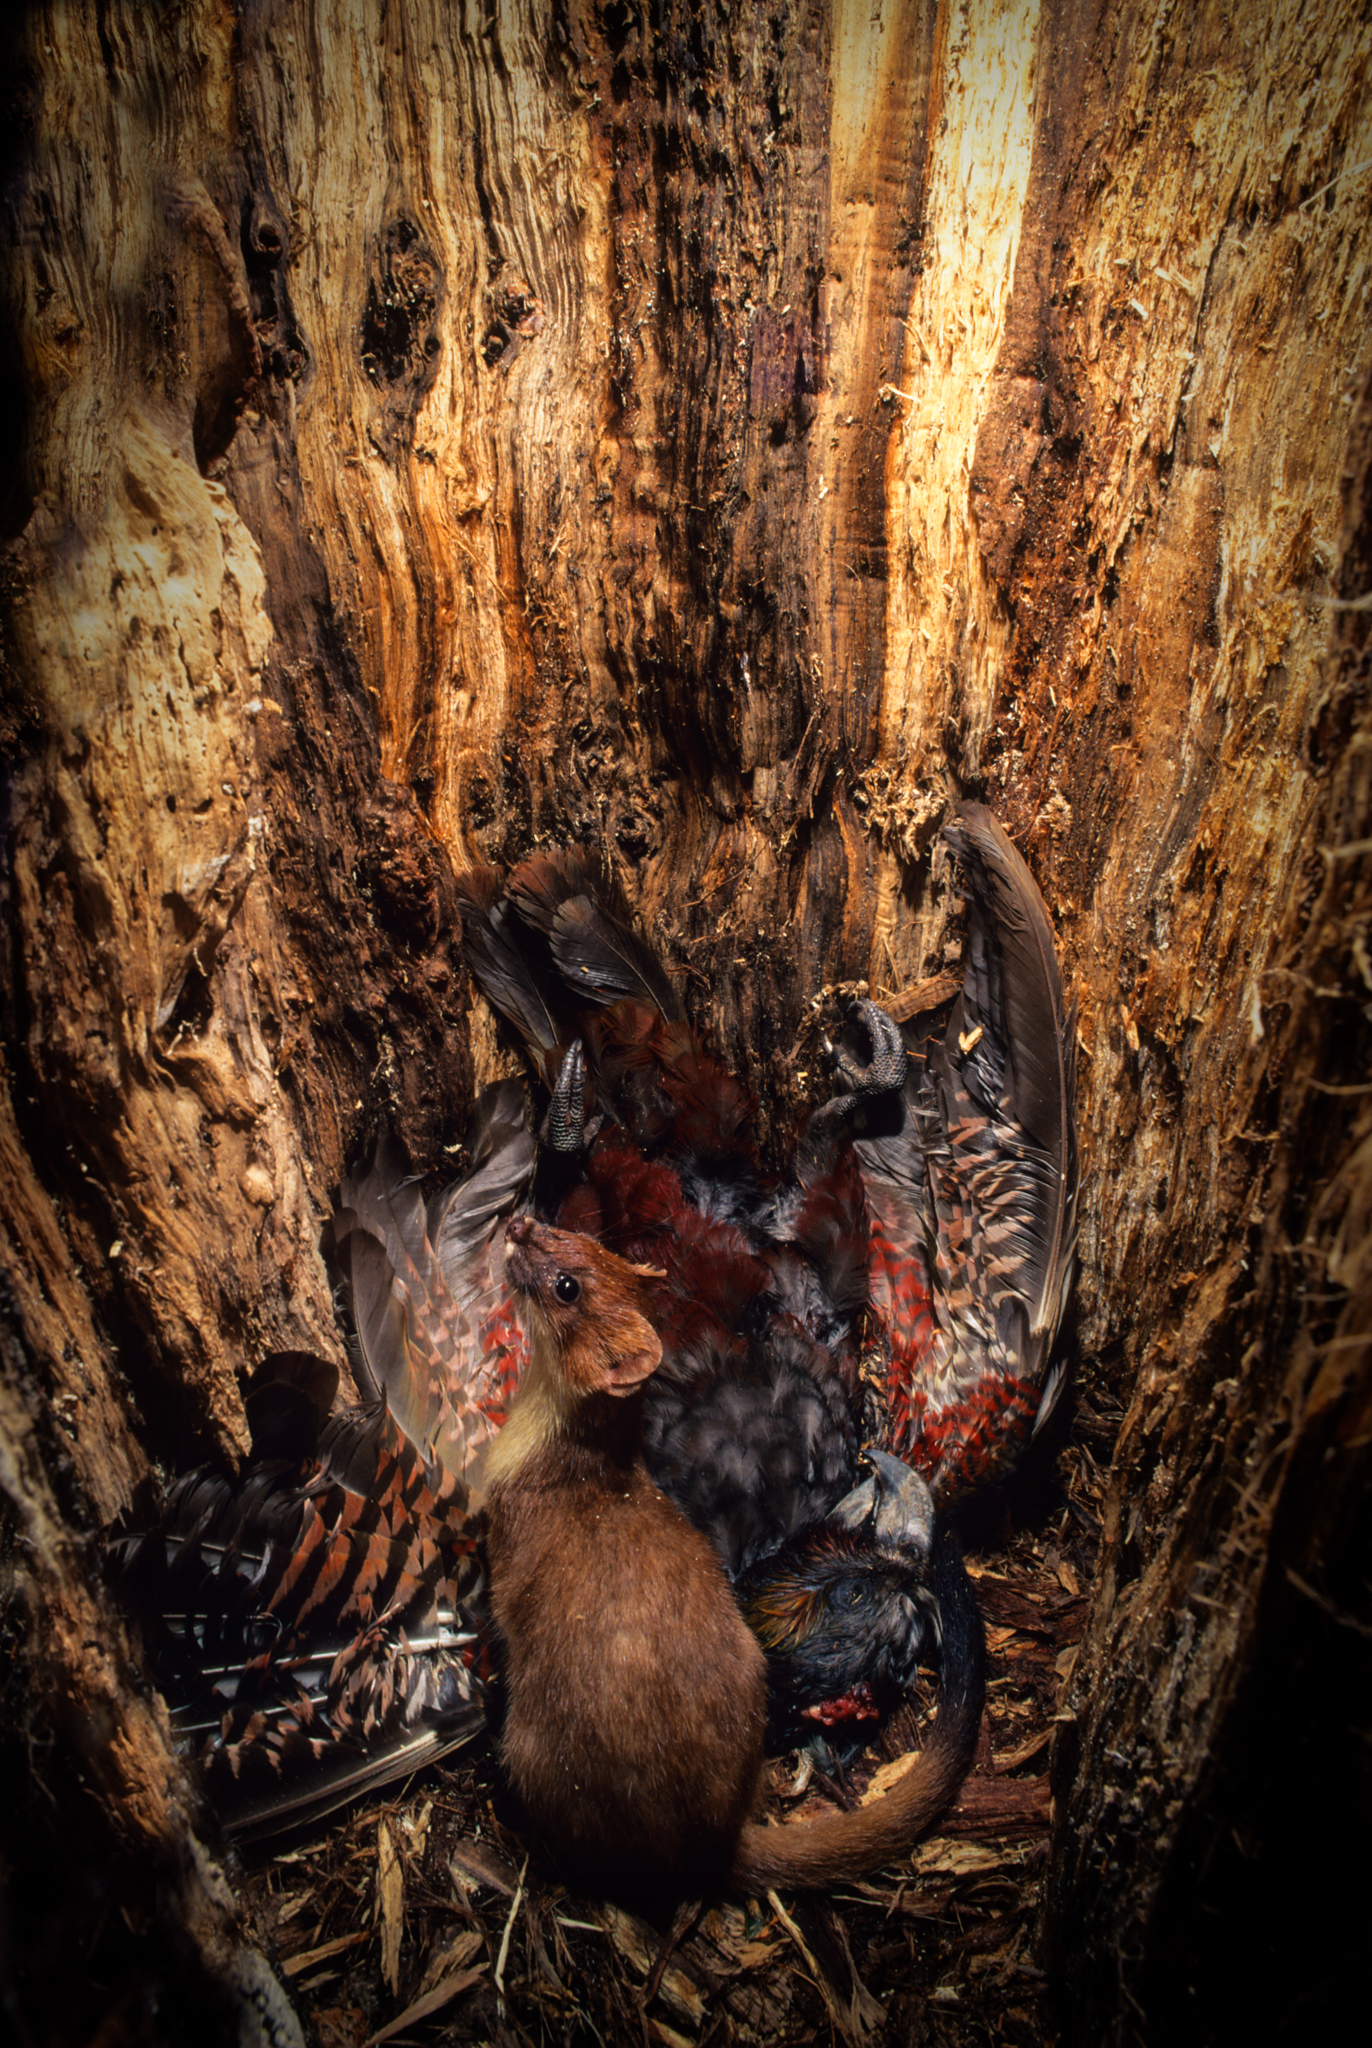 On her nest inside a hollow tree, a female South Island kaka falls victim to an invasive stoat. Photograph by Rod Morris / www.rodmorris.co.nz